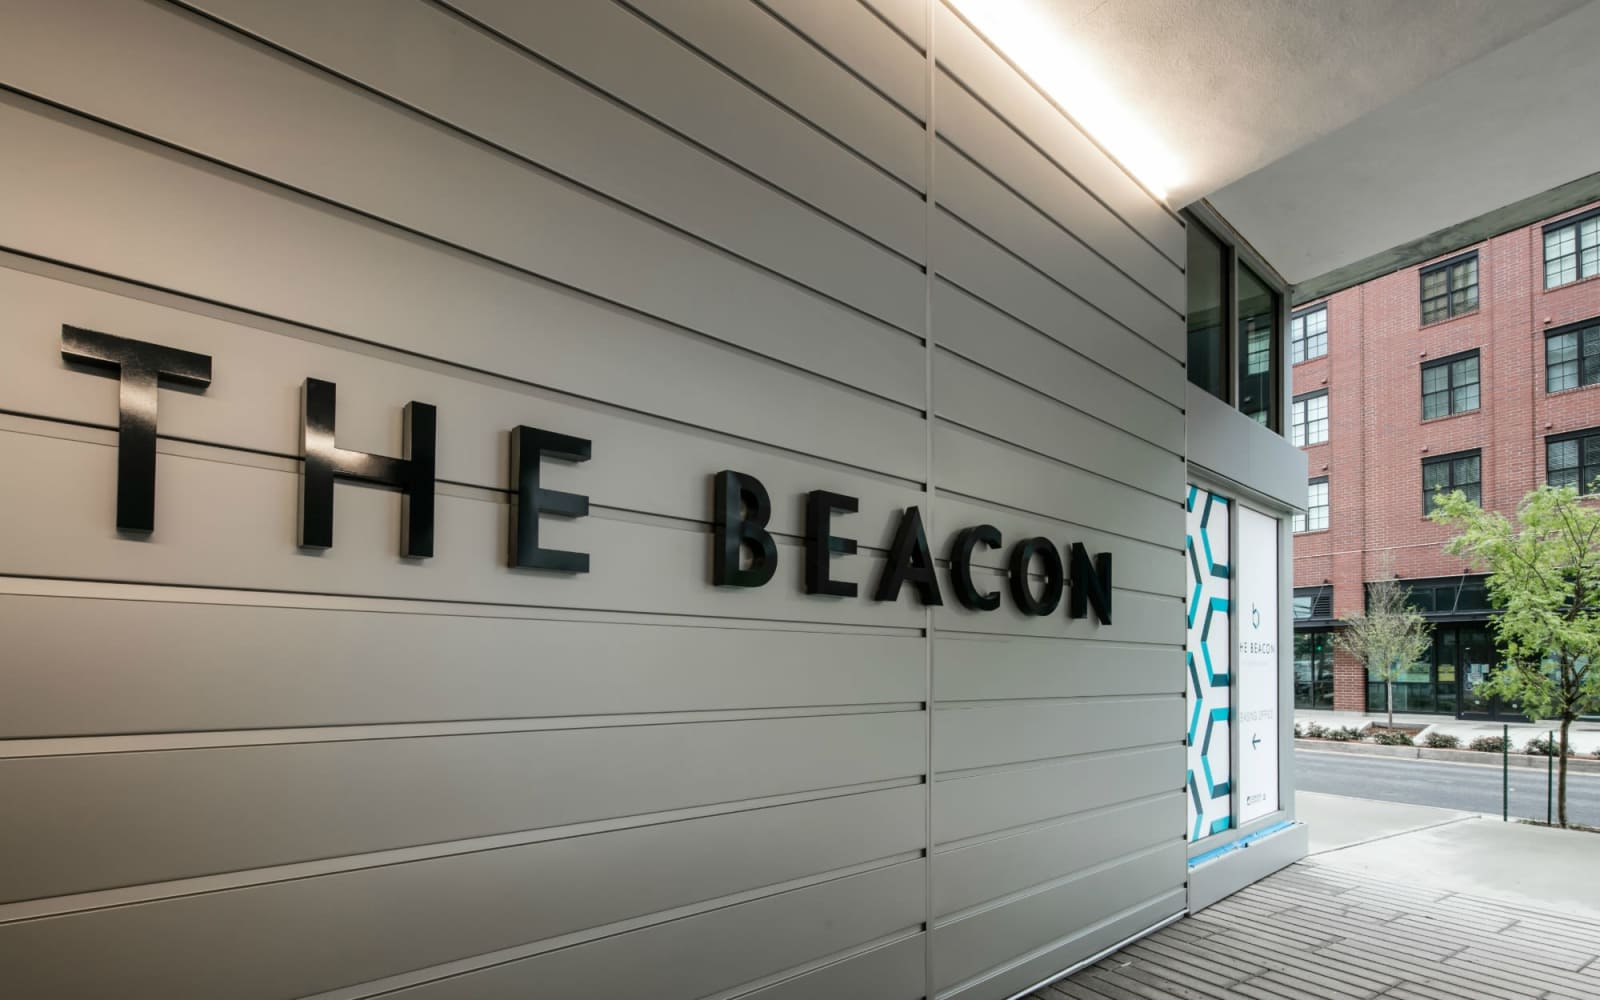 Entrance to The Beacon at South Market in New Orleans, Louisiana